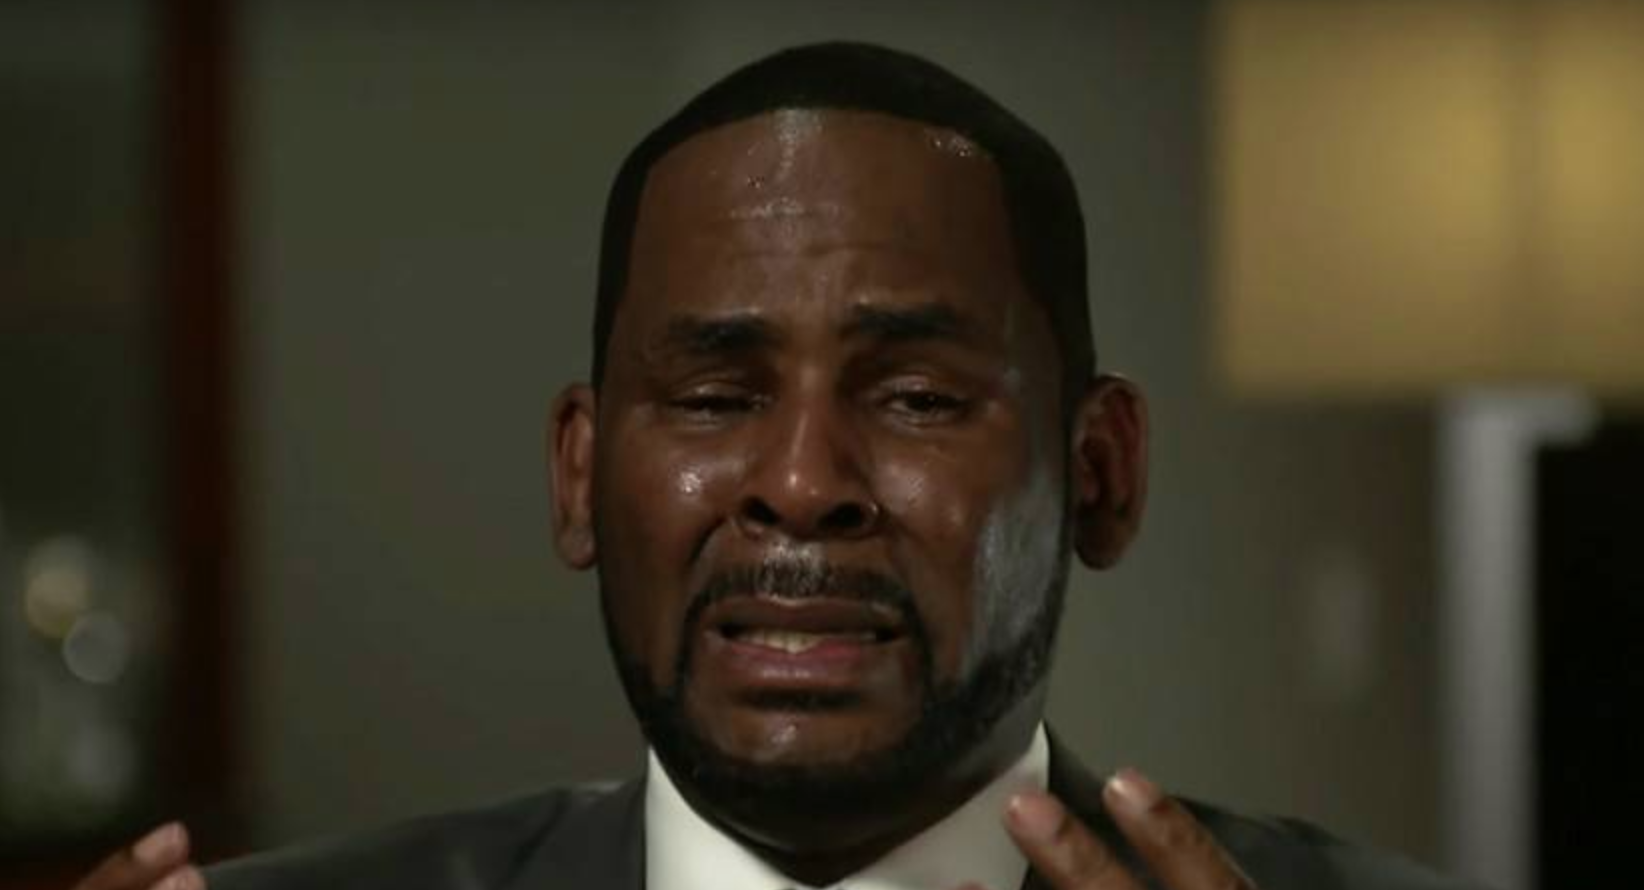 Court documents reveal R. Kelly has only $625 to his name: Seized funds to pay off debts have left his financial situation crumbling